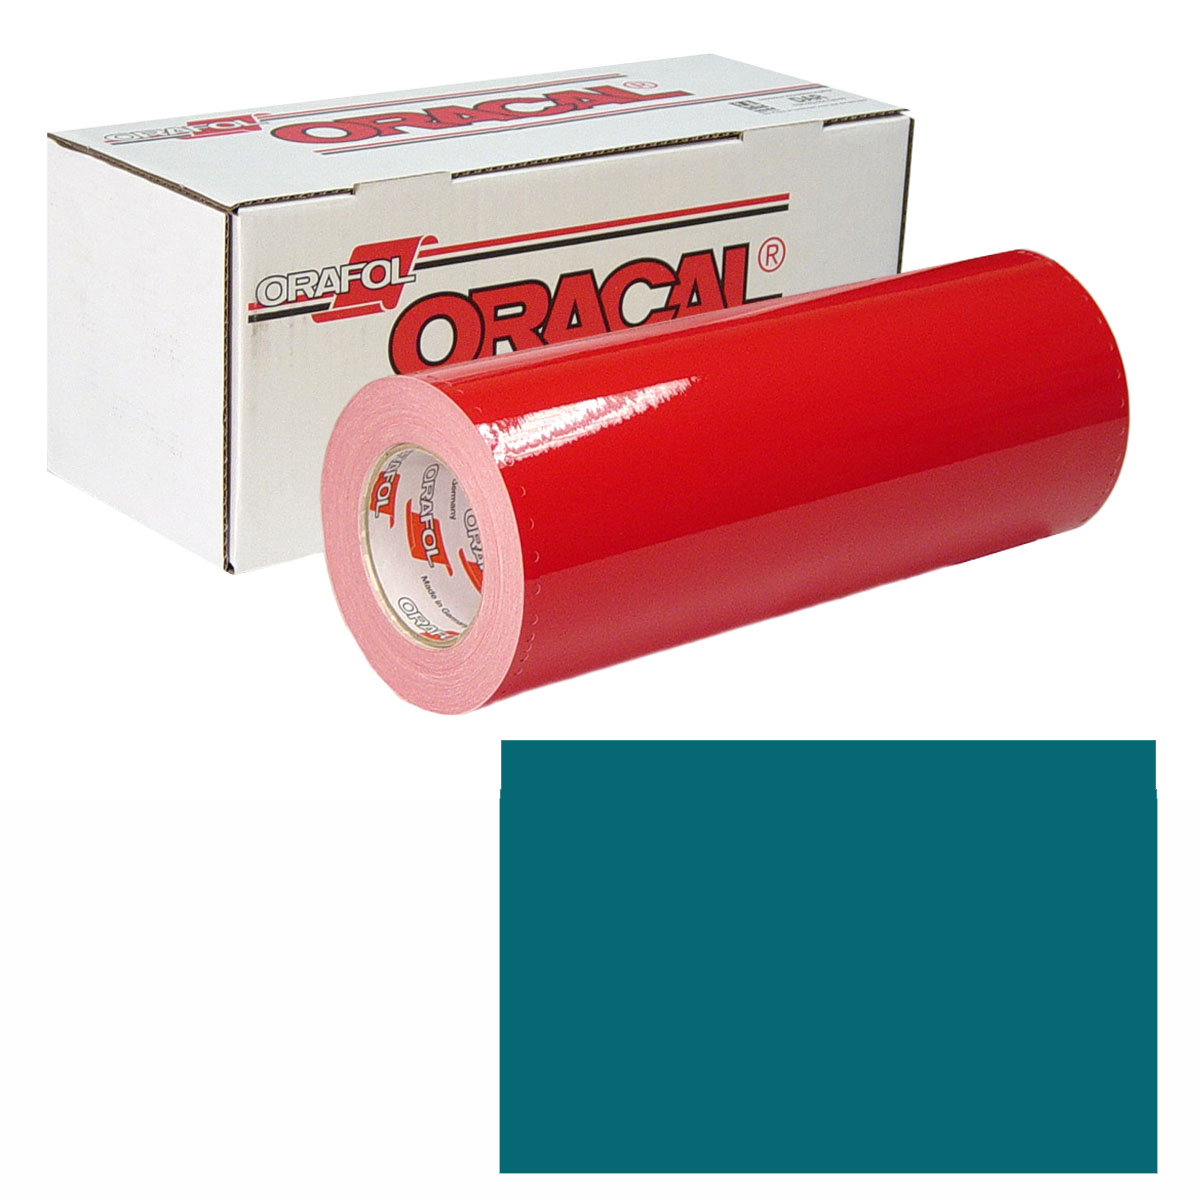 ORACAL 951M 30In X 50Yd 637 Teal Metallic